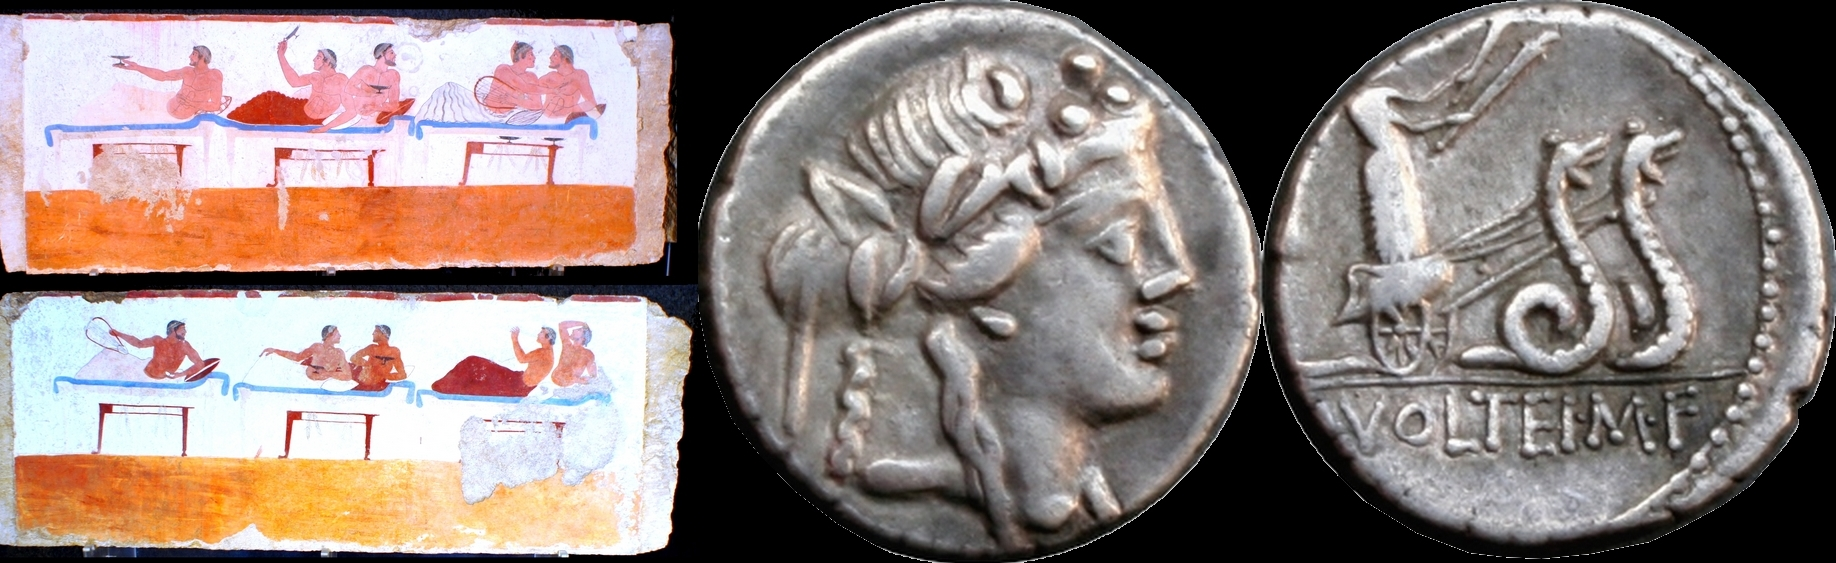 385/3 coin of Marcus Volteius with Bacchus god of wine and fun, with scene of wine, merrymaking and affection from Paestum's Tomb of the Diver 510BC